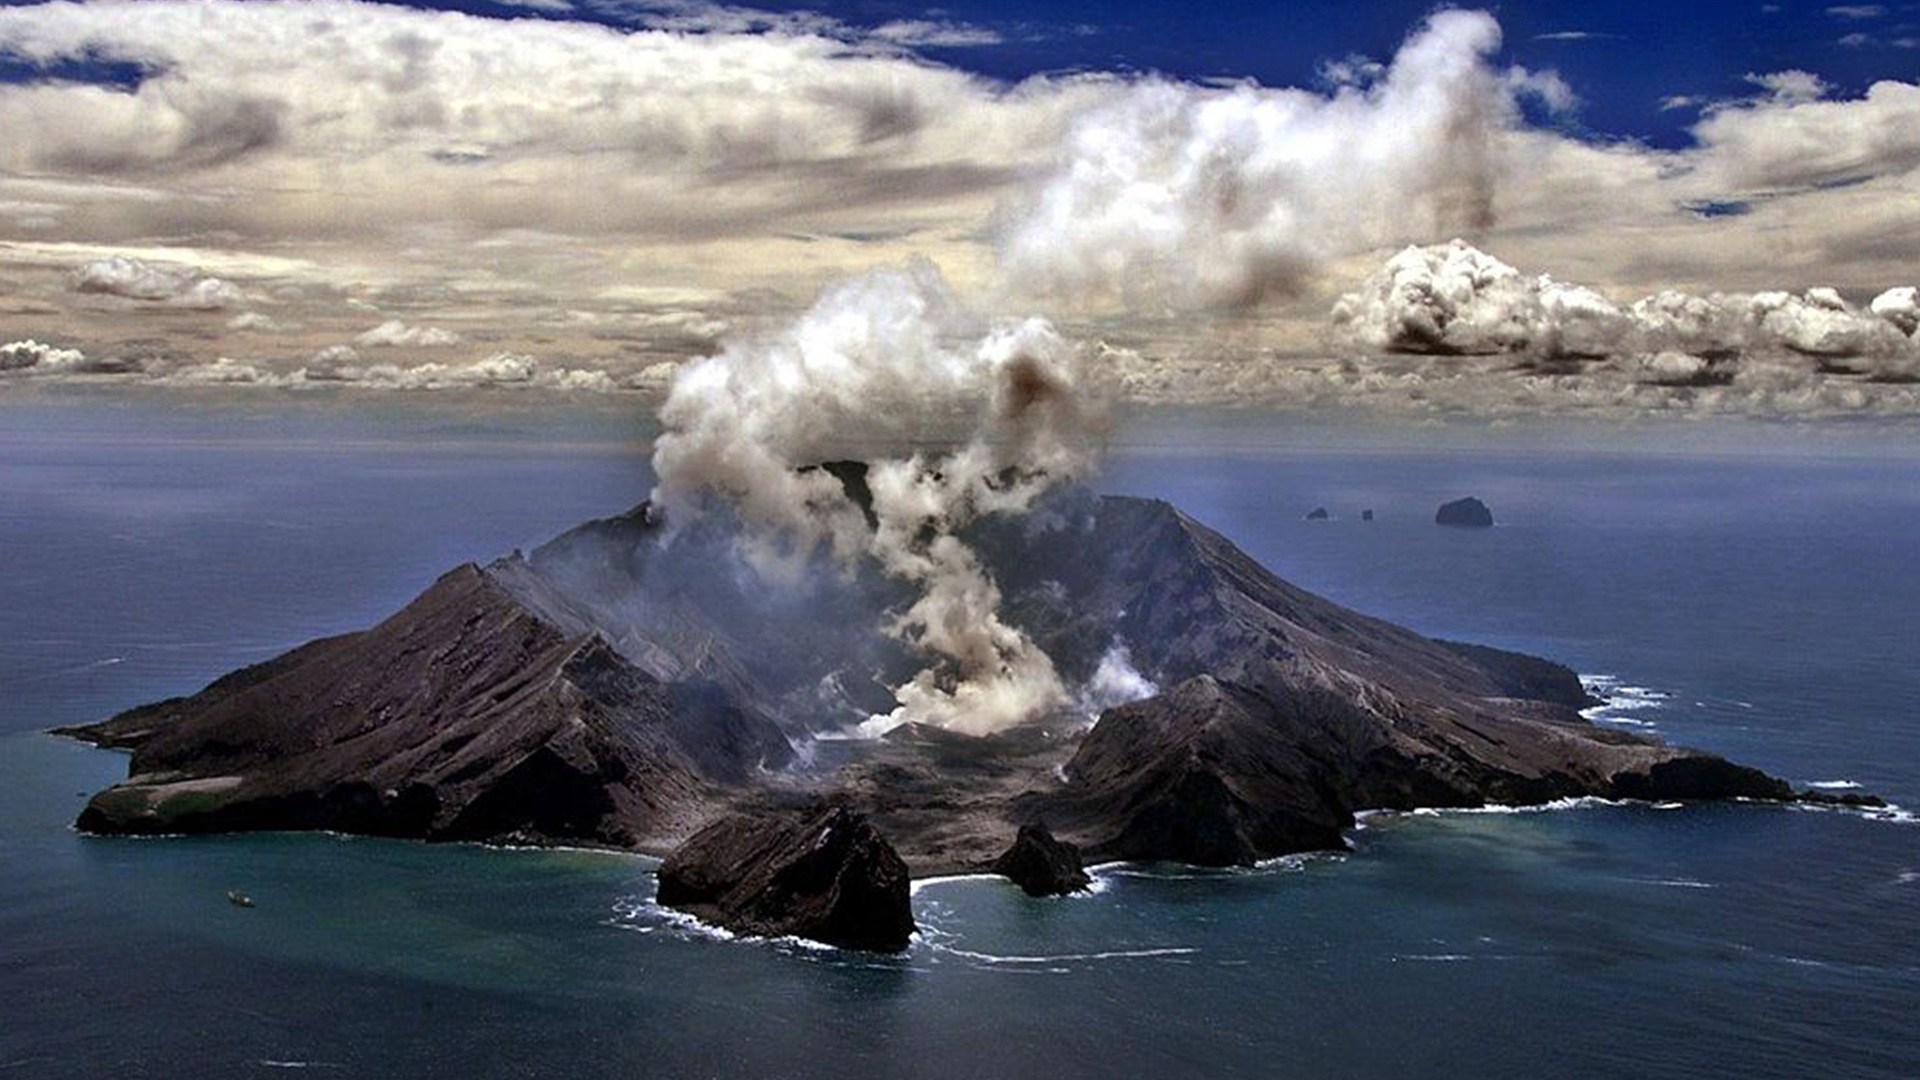 2 Chinese nationals among those injured in New Zealand volcanic eruption